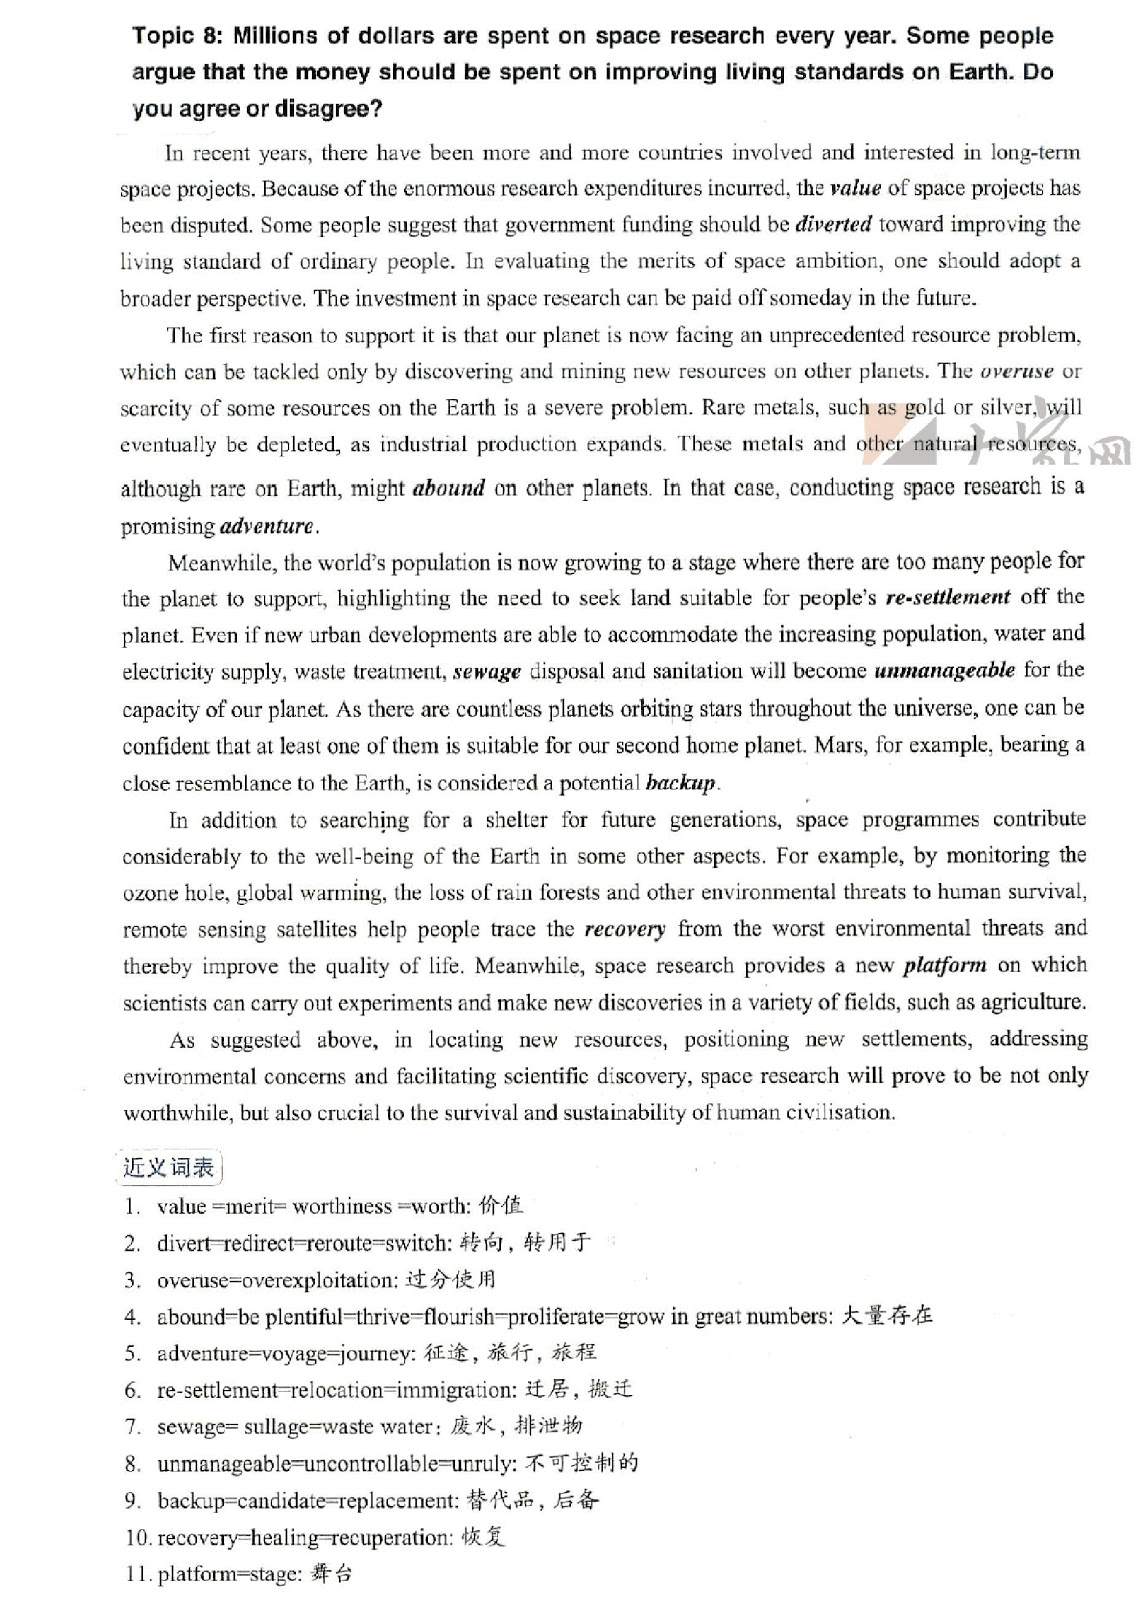 the perfect essay for ielts Ielts advantages and disadvantages questions normally give you a statement and ask you to comment on the advantages and disadvantages of that statement the problem is that there are 3 different types of advantages and disadvantages essay and they each require a different approach.